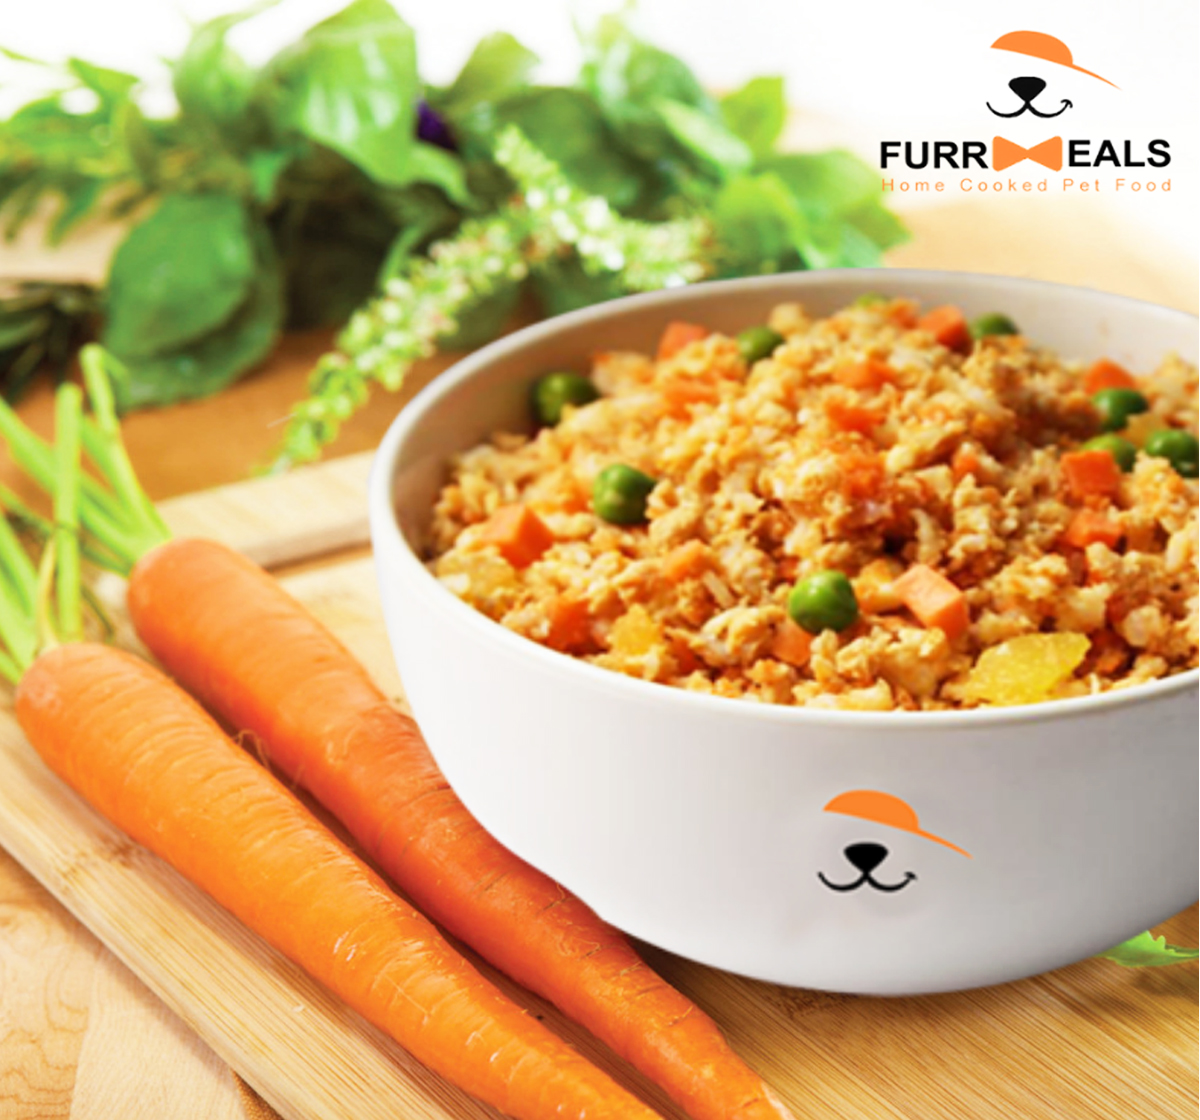 FurrMeals Herbed Chicken & Rice Home cooked Adult Dog Food - 3 kg